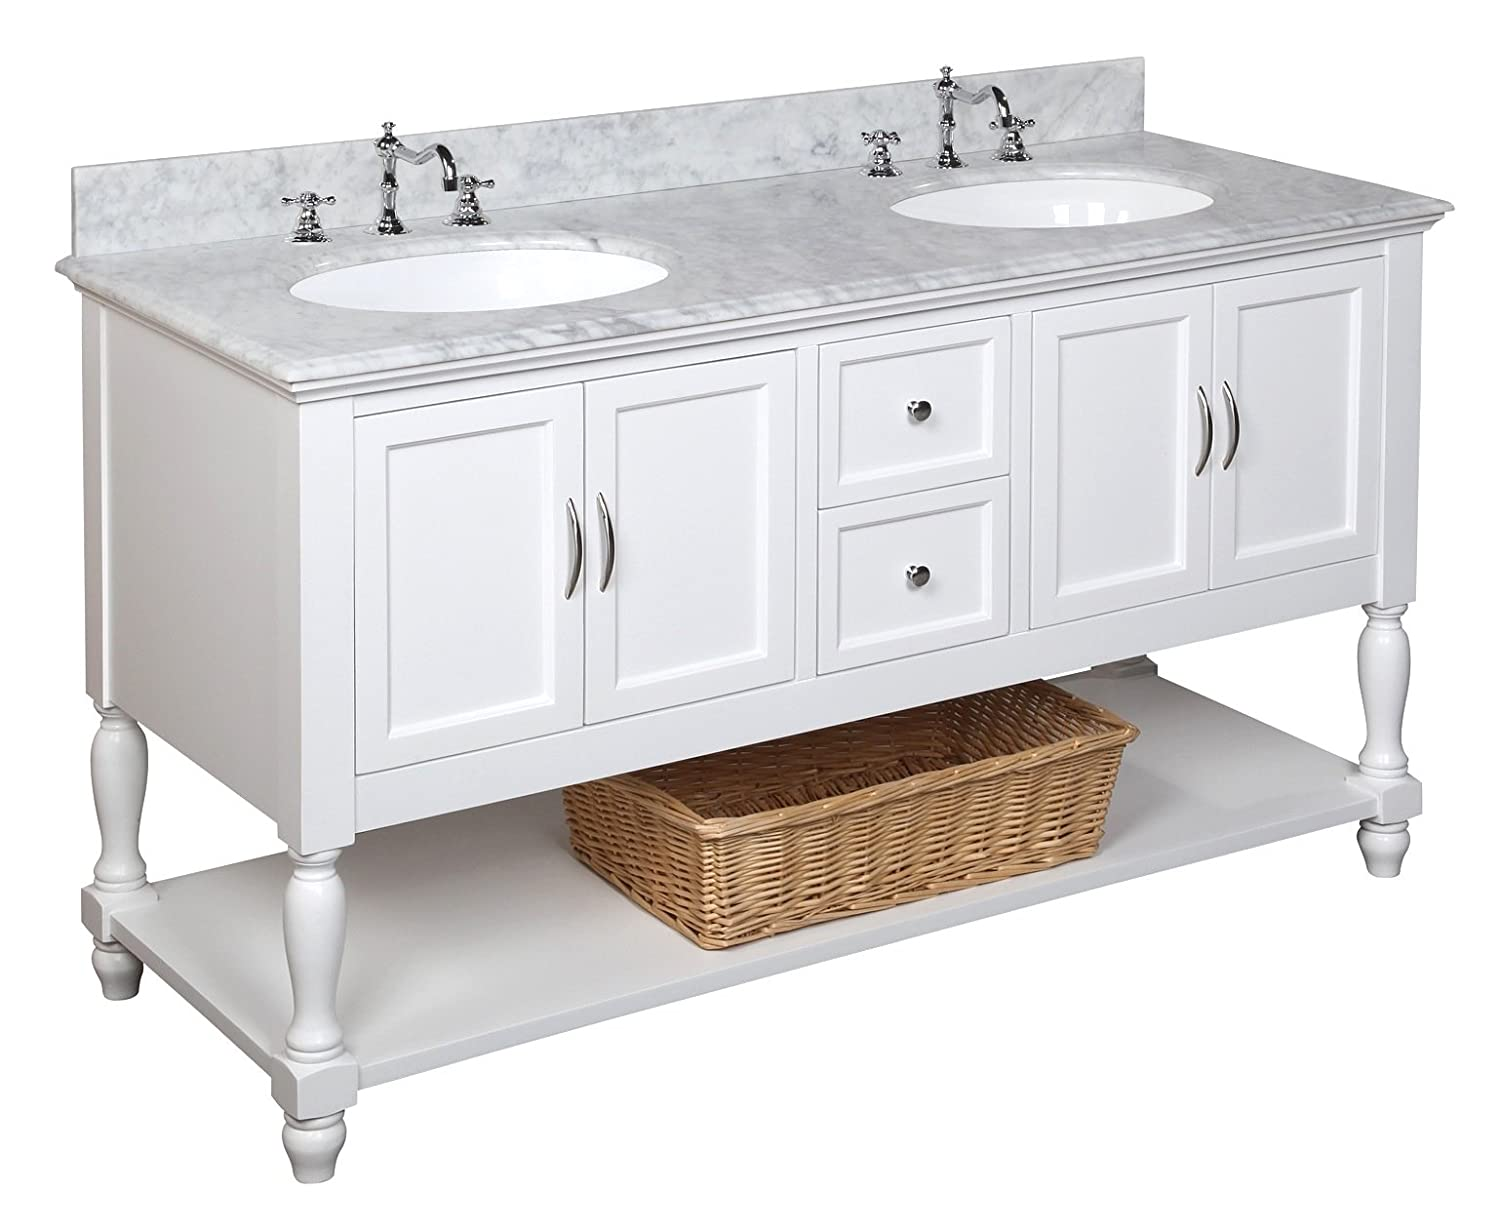 double bathroom sink vanity. Kitchen Bath Collection KBC667WTCARR Beverly Double Sink Bathroom Vanity  with Marble Countertop Cabinet Soft Close Function and Undermount Ceramic